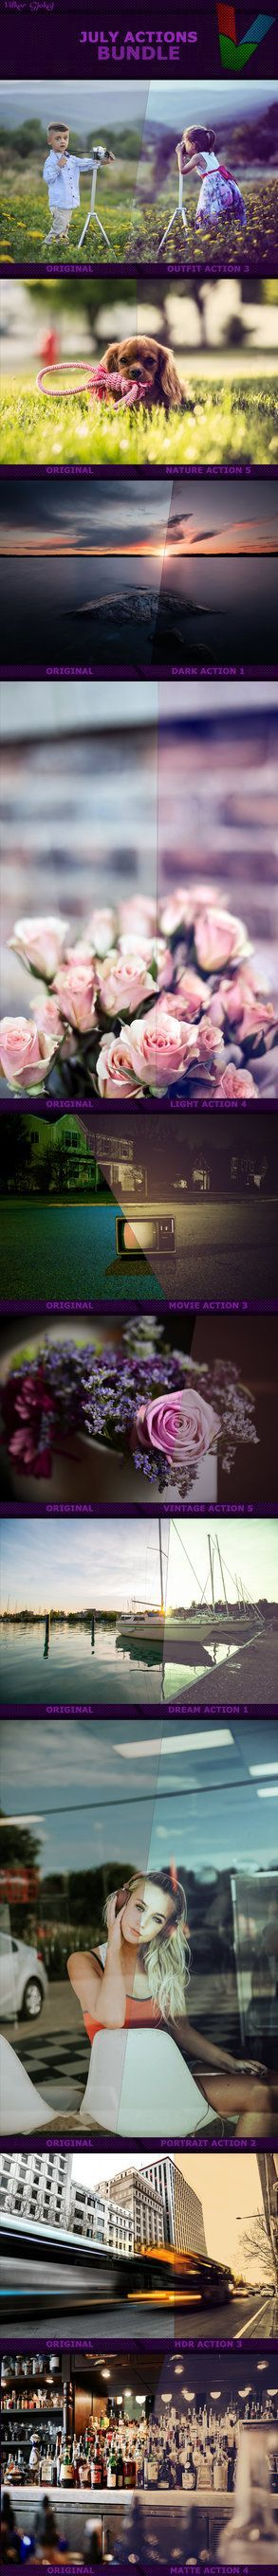 July Photoshop Actions Bundle by ViktorGjokaj.deviantart.com on @DeviantArt  #blur #free #go #photo #pokemon #sun #addons #animals #beforeandafter #children #clean #clouds #colors #dark #dog #download #effects #face #film #filters #flowers #focus #hdr #july #light #macro #model #movie #nature #outifit #photographer #photoshop #professional #resources #romance #rose #selfie #sky #vintage #watercolor #blurryface #actons #hdrphotography #use